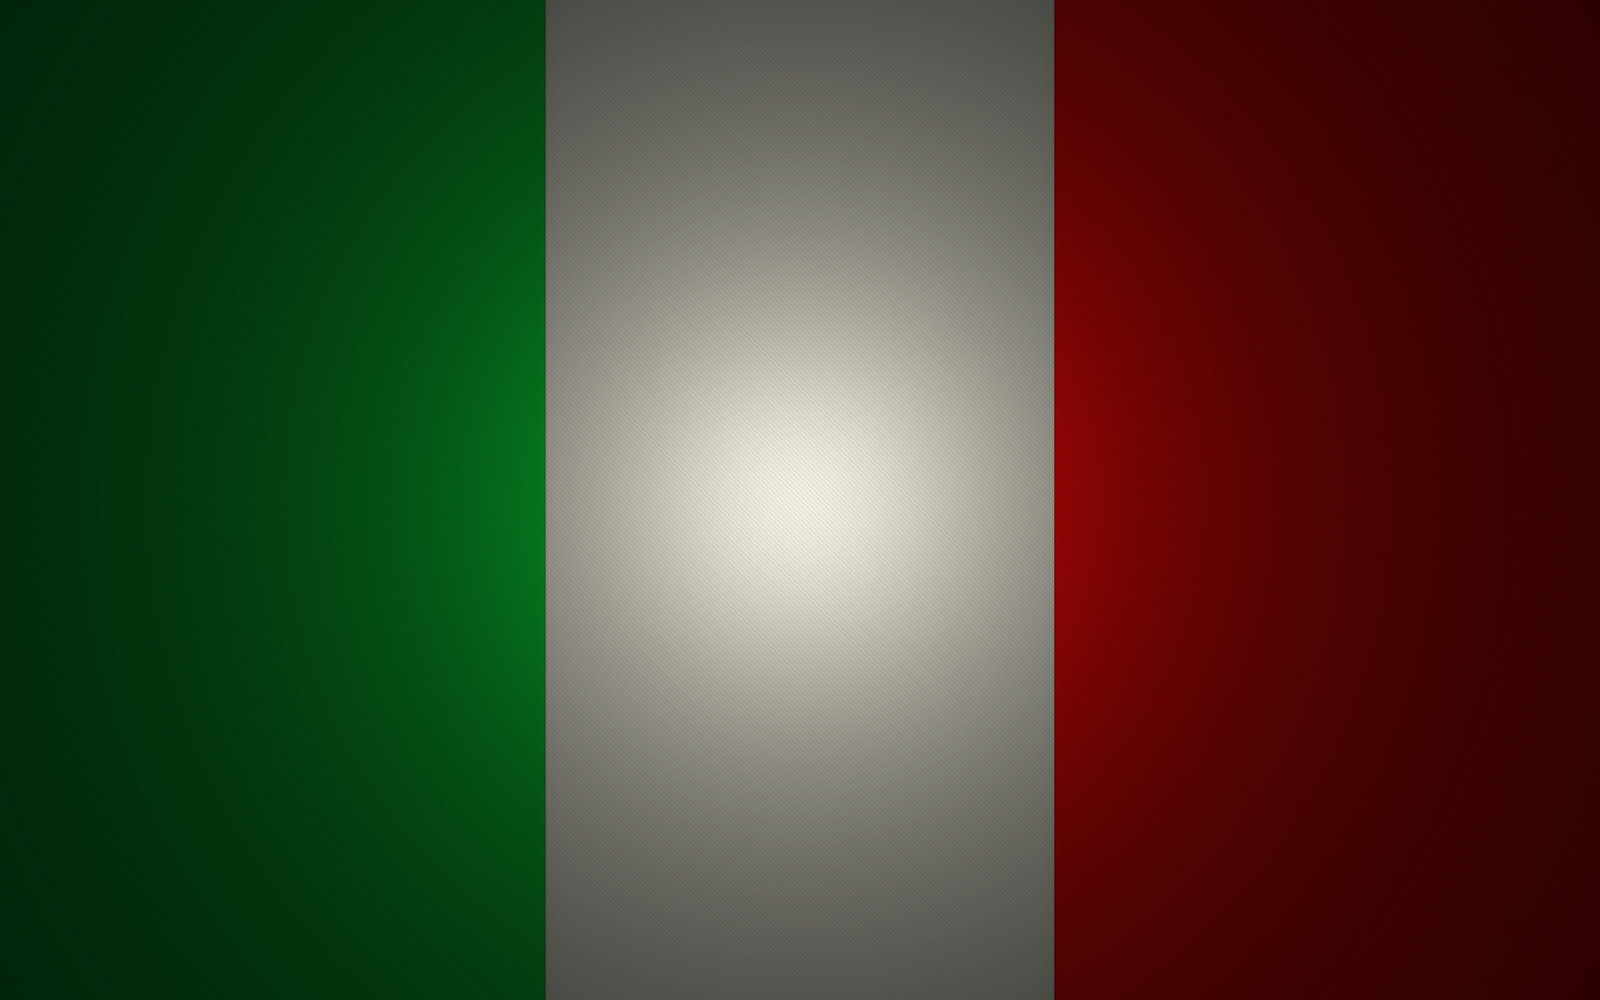 Free Download Italy Flag Wallpaper Italian Flag Wallpaper By